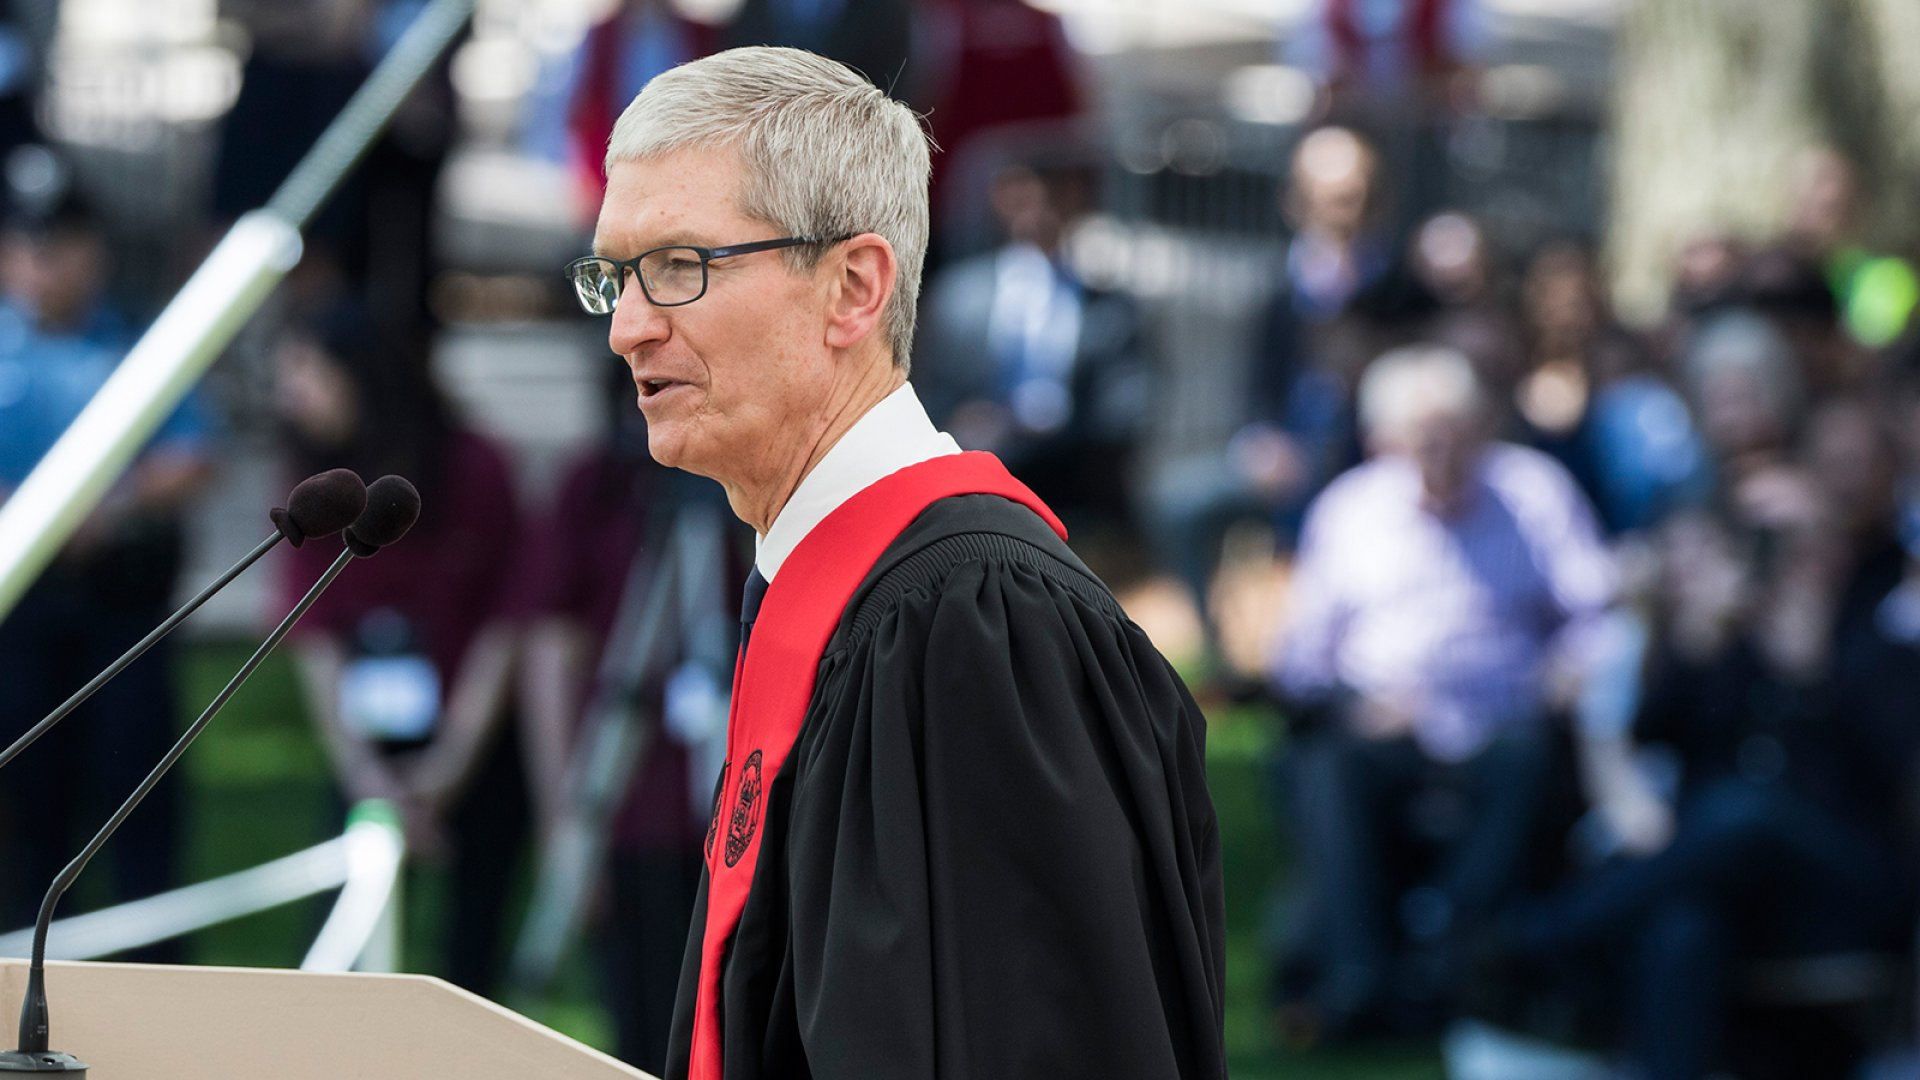 Tim Cook speaks at the 2017 MIT Commencement Ceremony.